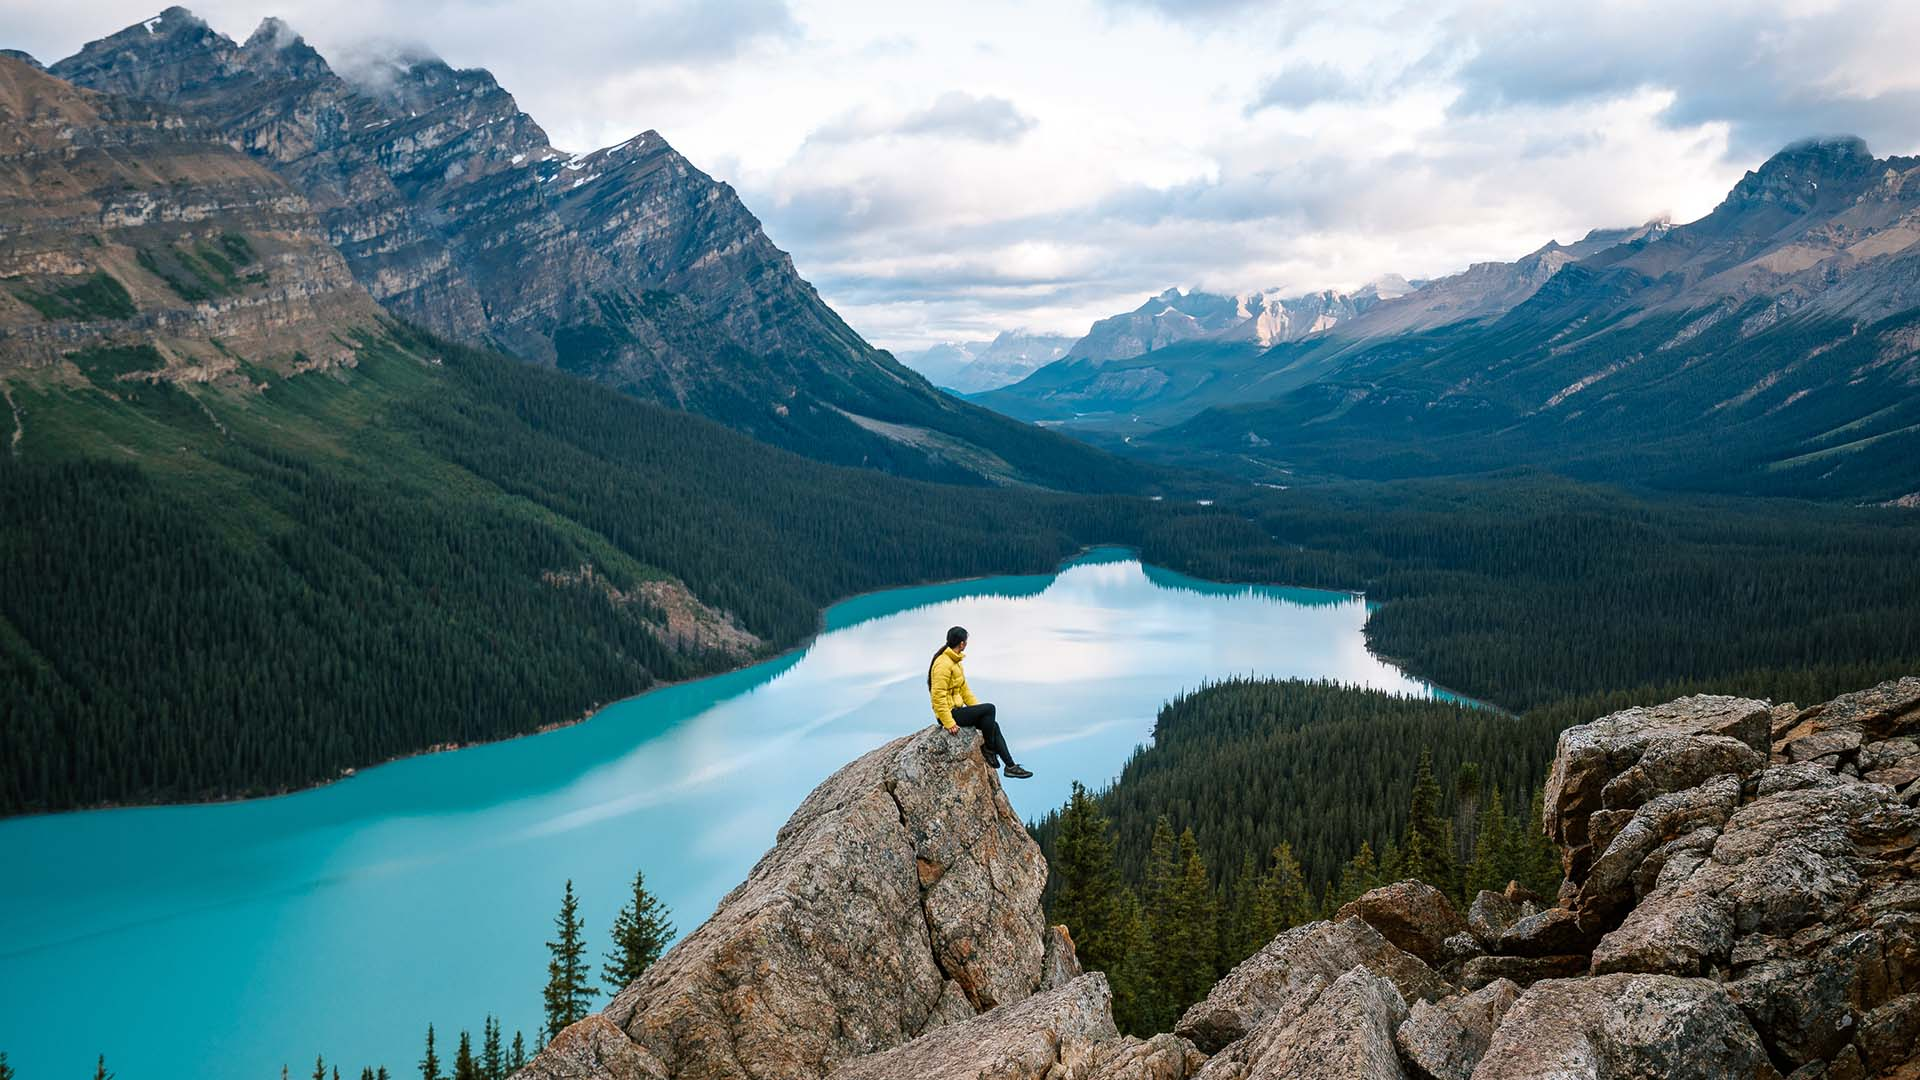 The author enjoys an early morning view of Peyto Lake in Banff National Park.